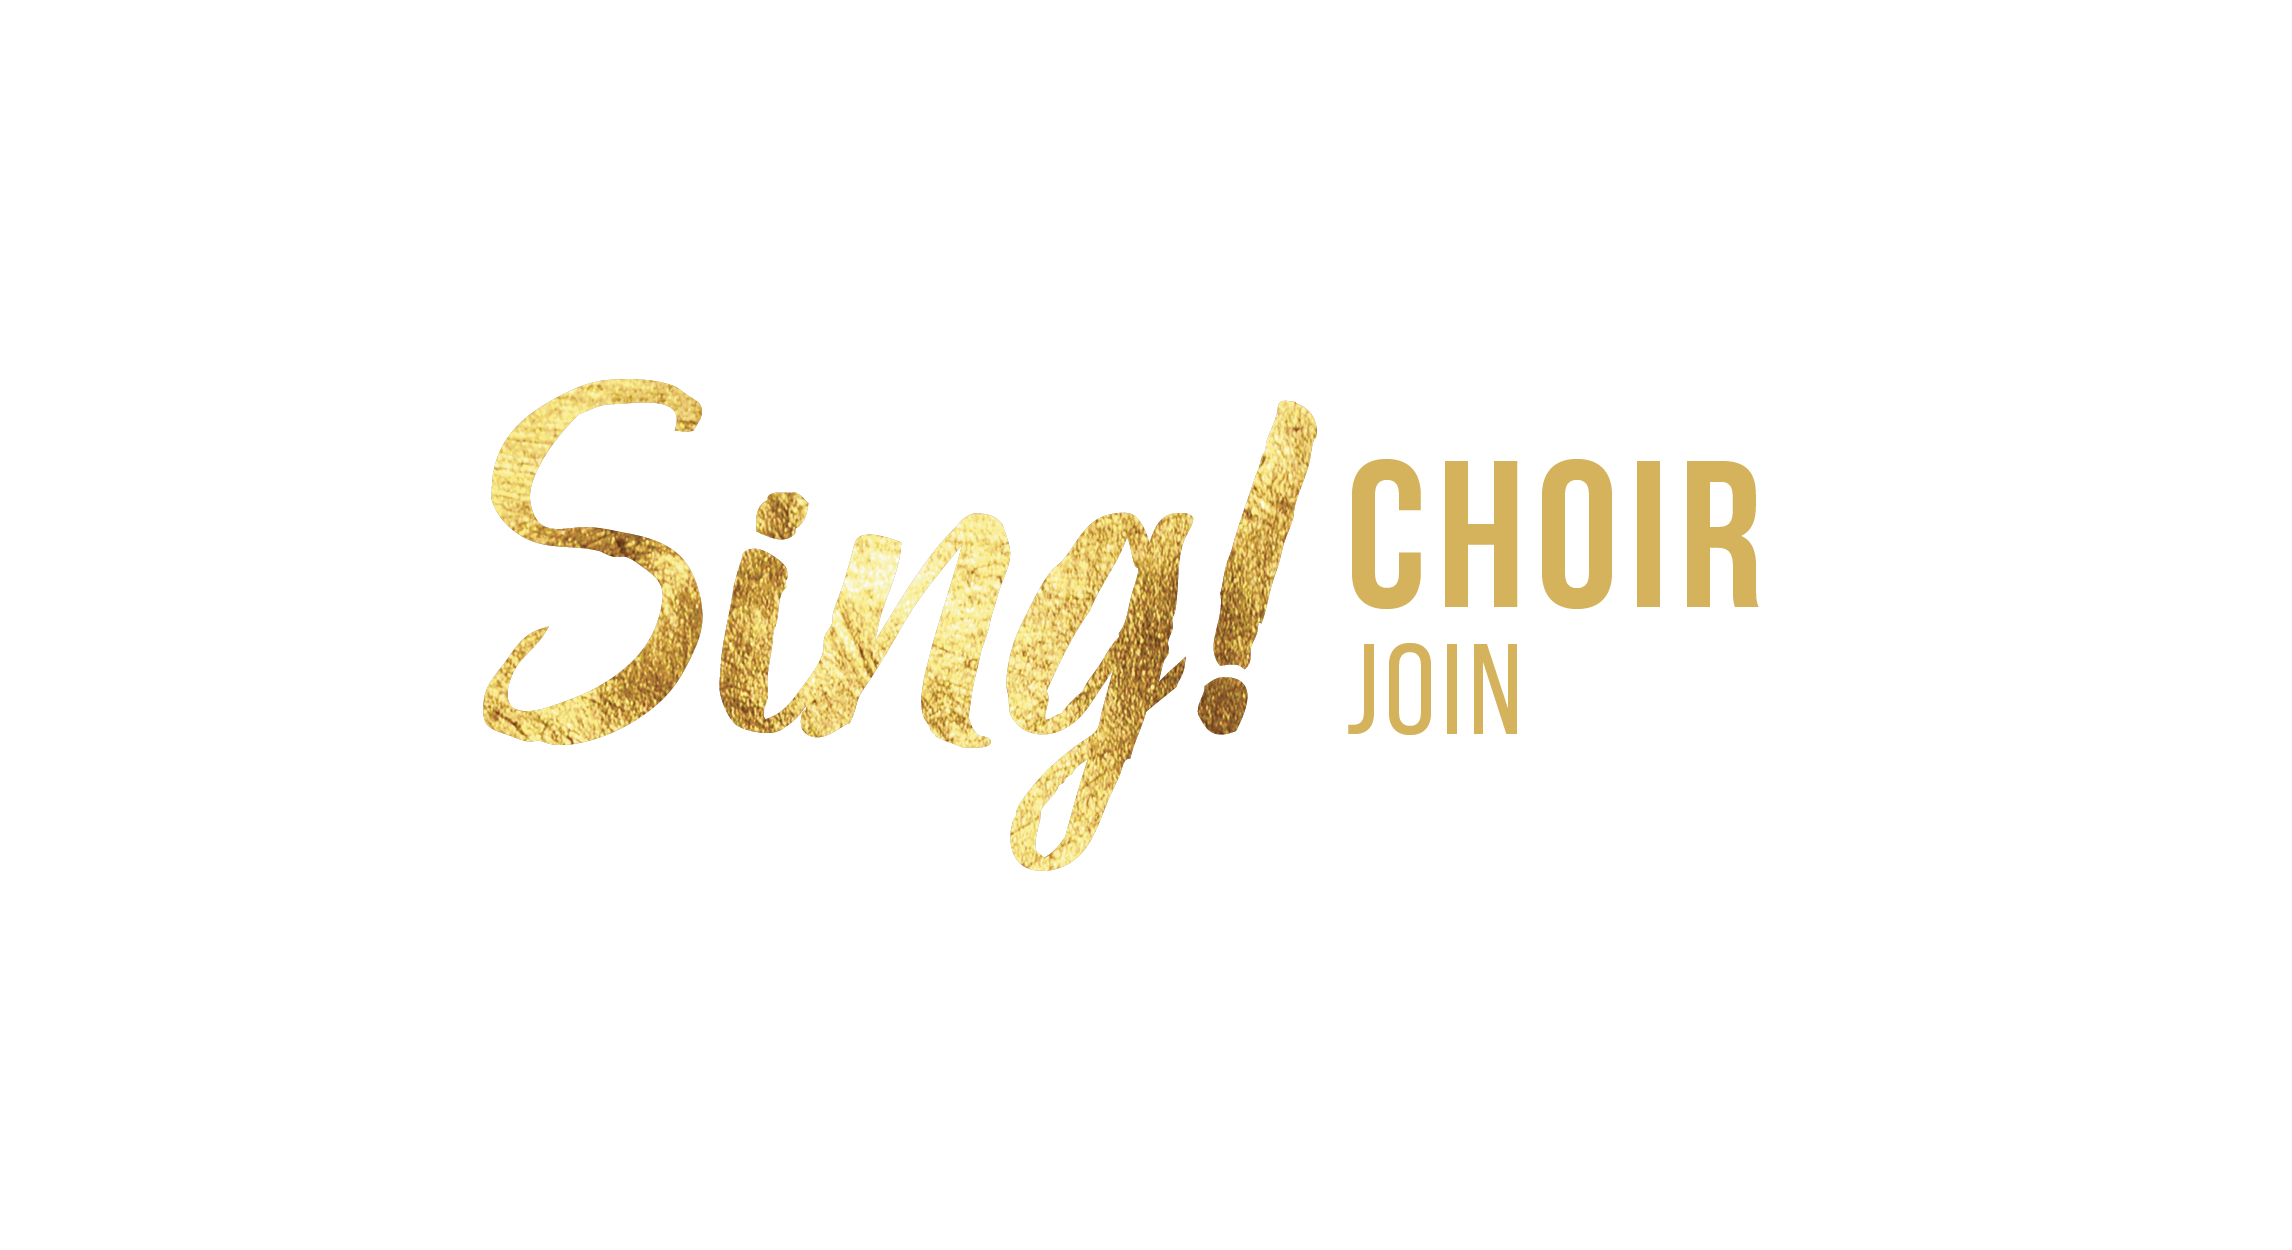 sing web banner - join.png